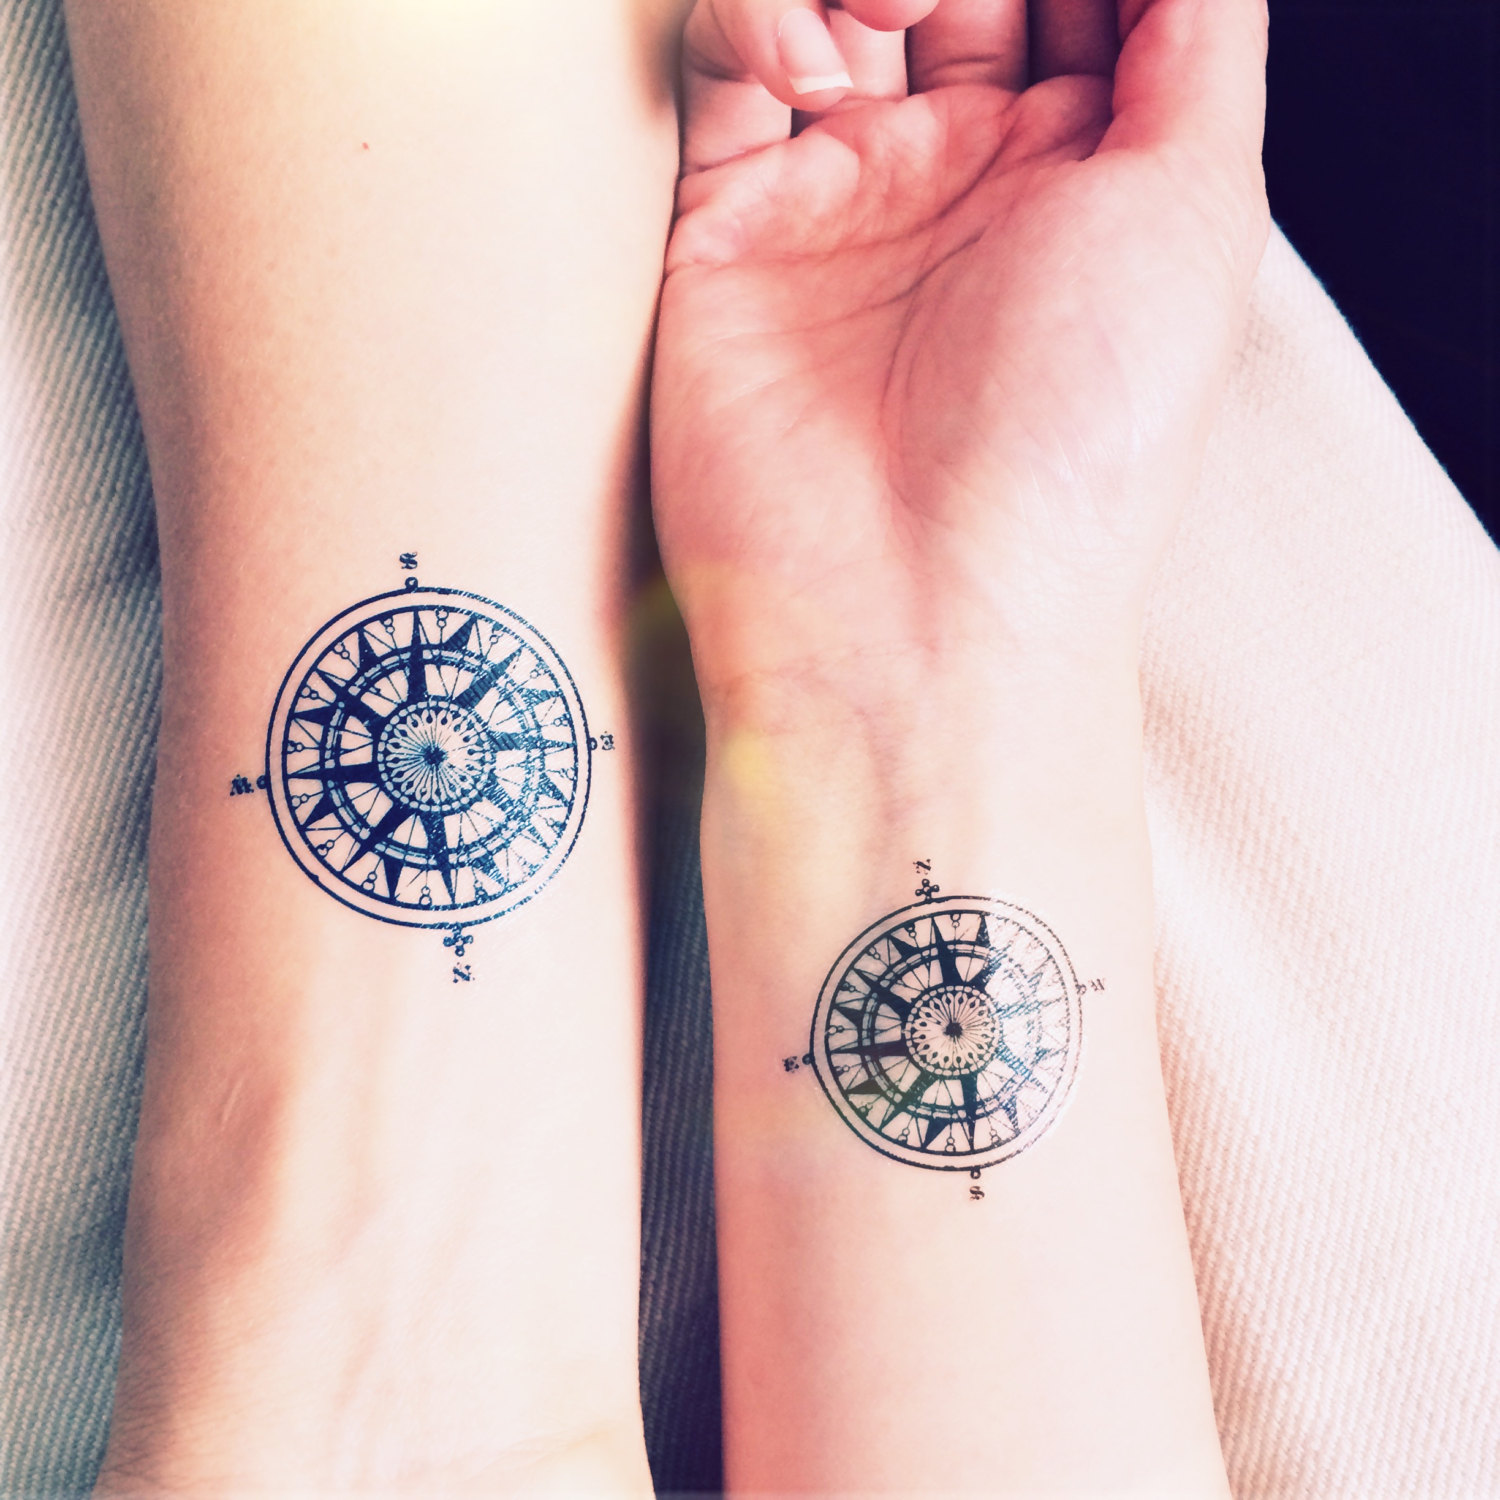 Love Quotes Tattoos For Couples 16 Best Couple Travel Tattoo Ideas & Designs